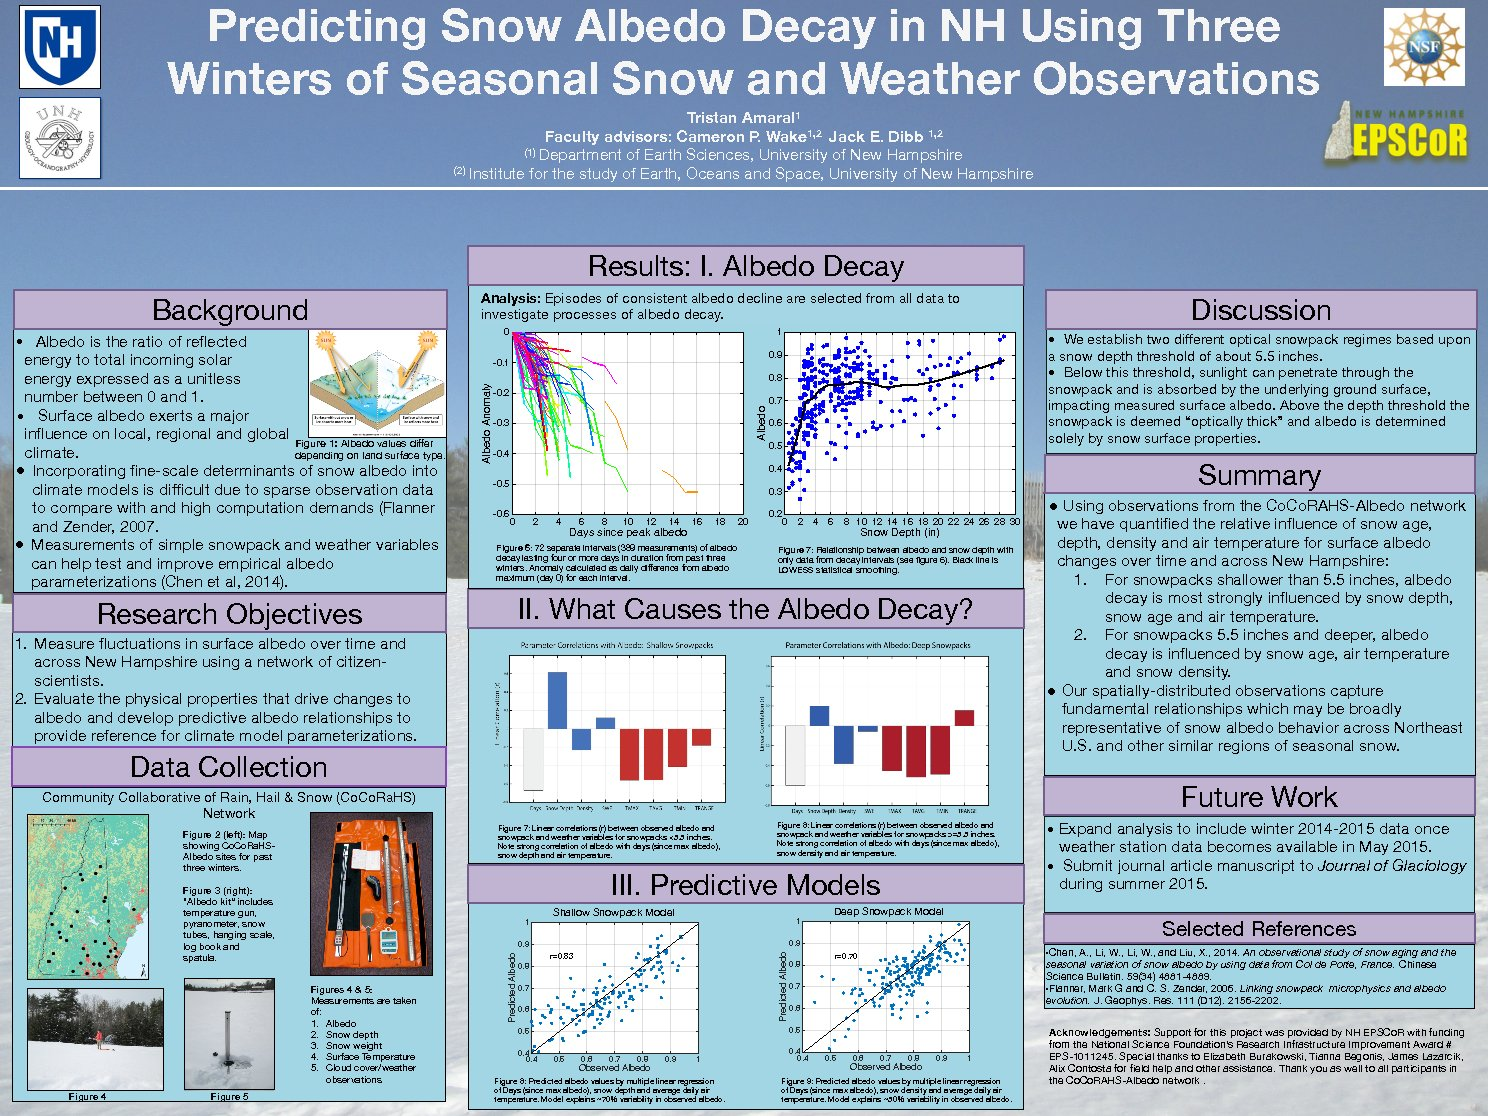 Predicting Snow Albedo Decay In New Hampshire Using Three Winters Seasonal Snow And Weather Observations by tov4